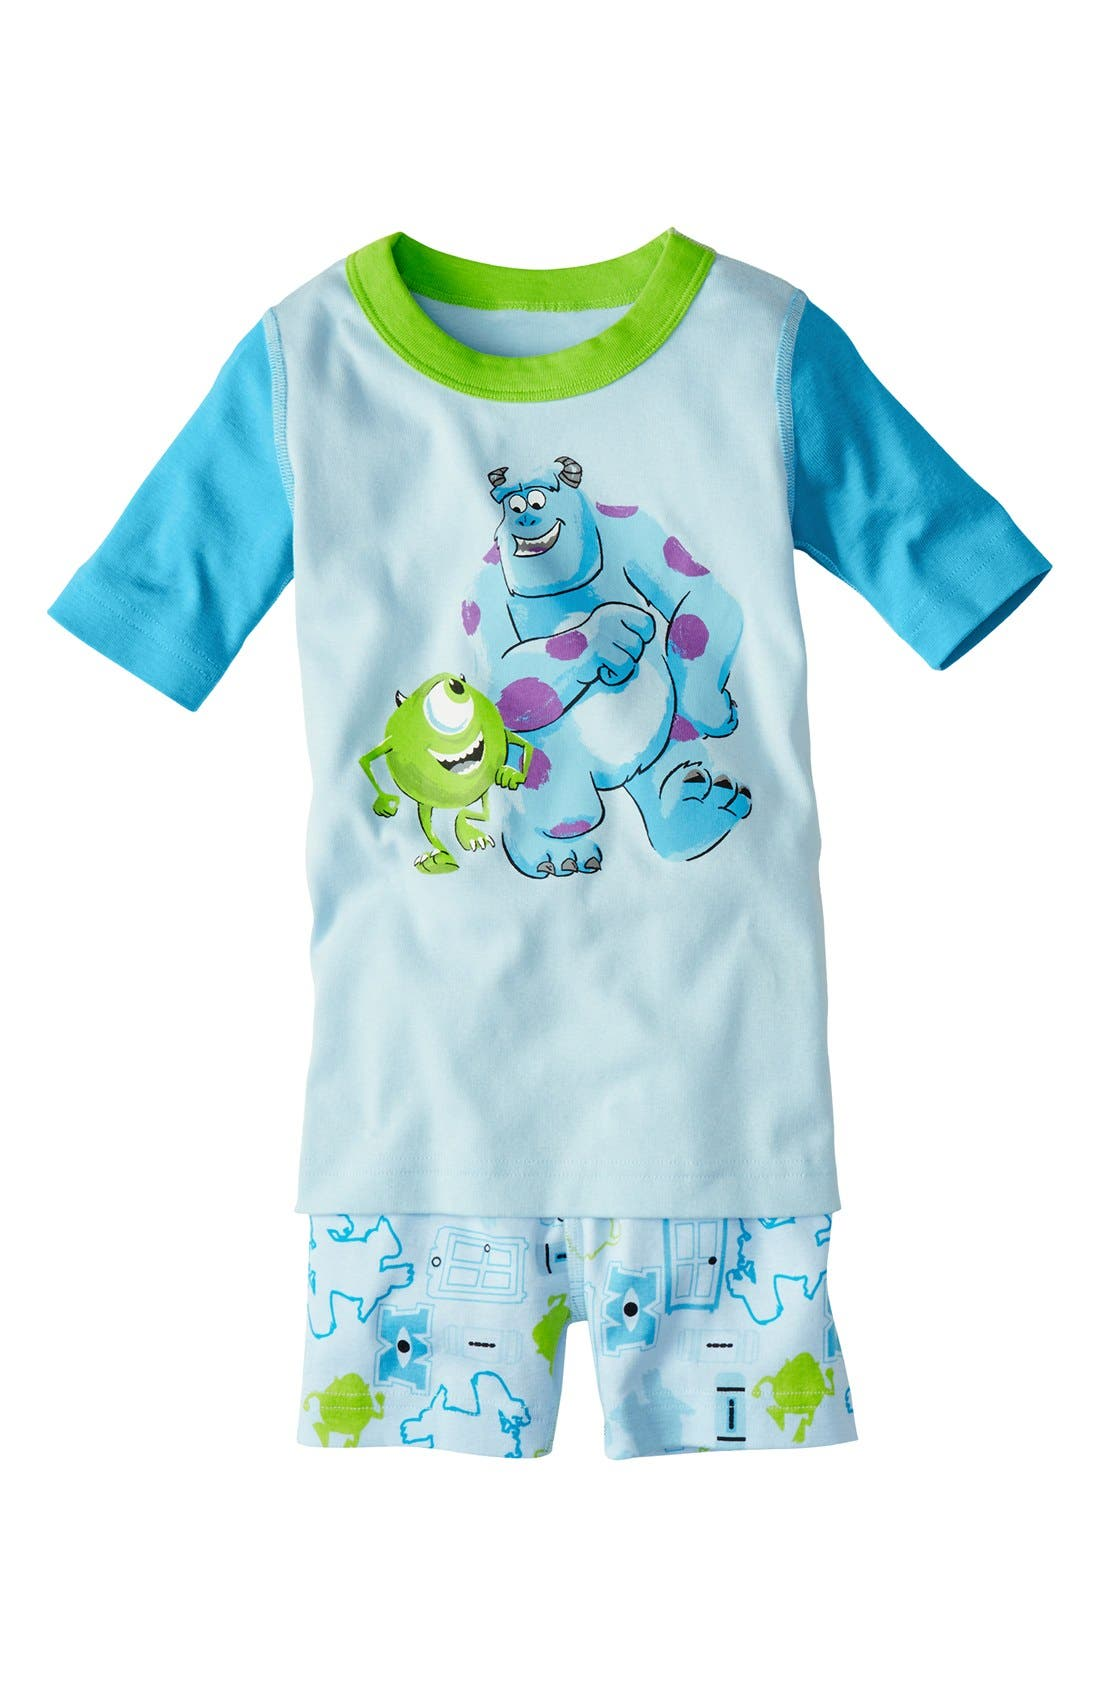 Alternate Image 1 Selected - Hanna Andersson 'Monsters, Inc.' Two-Piece Organic Cotton Fitted Pajamas (Toddler Boys, Little Boys & Big Boys)